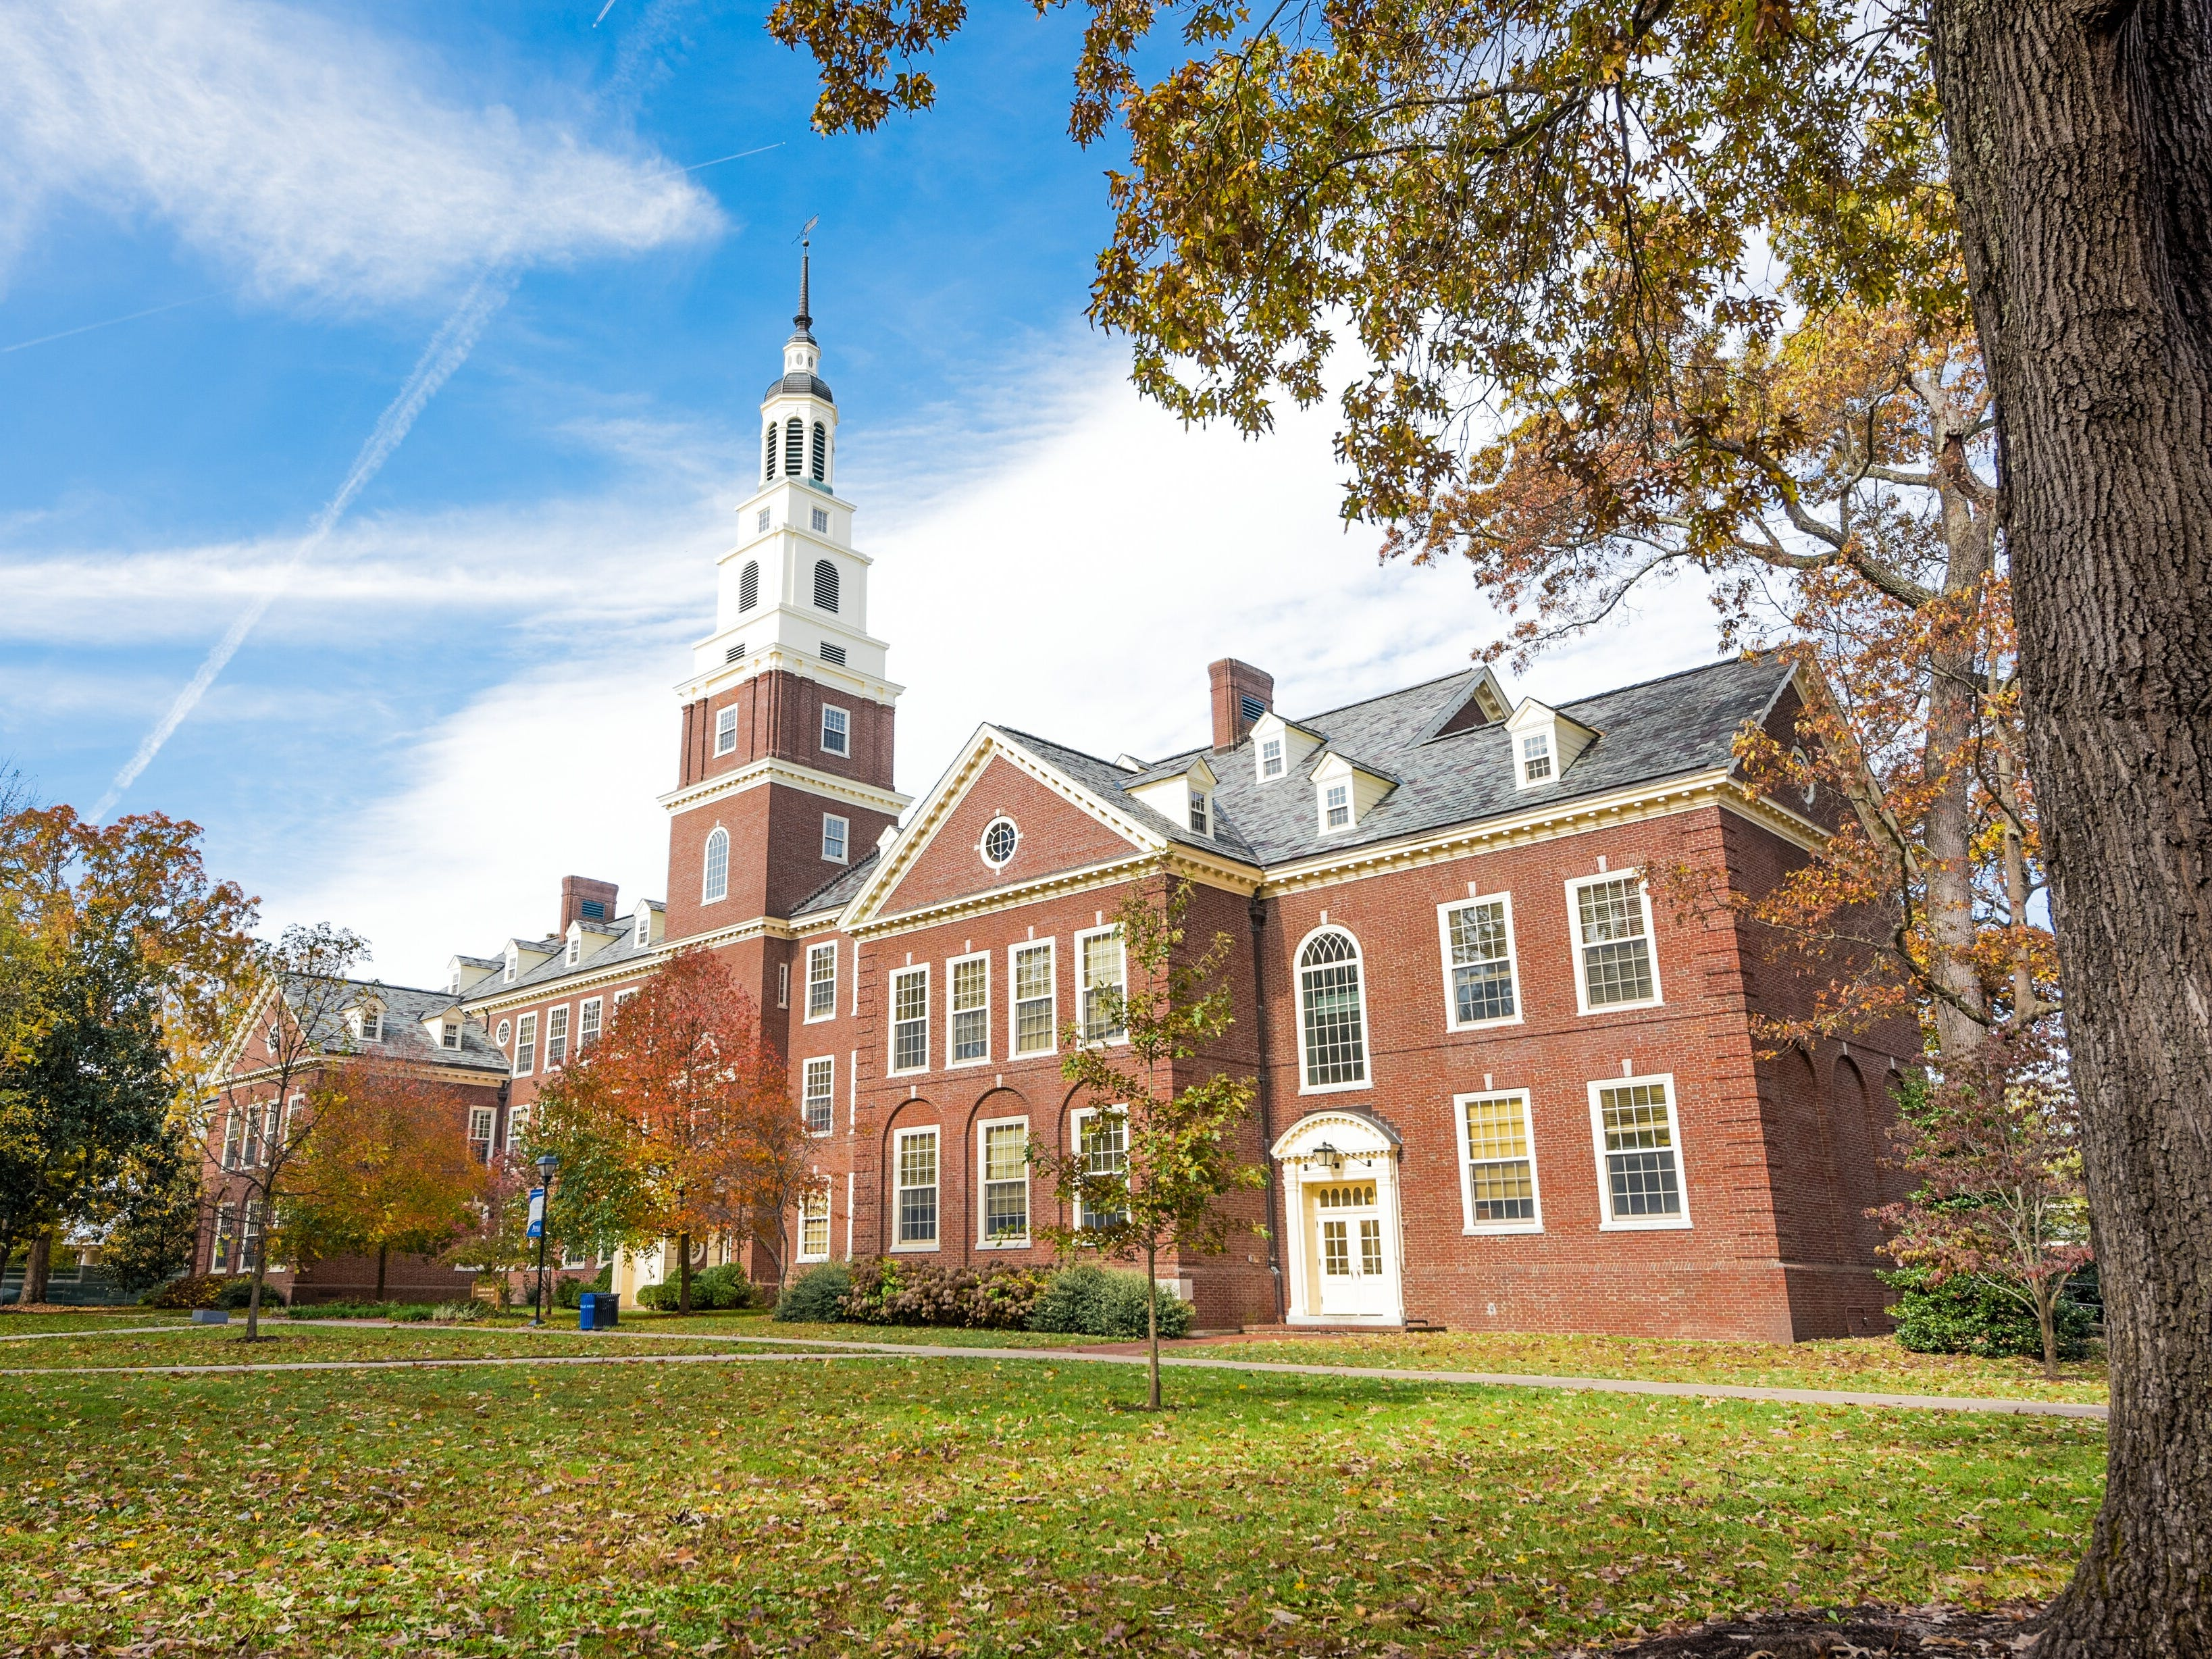 Kentucky: Founded in 1855, Berea College offers a scenic setting for students just outside of Lexington.